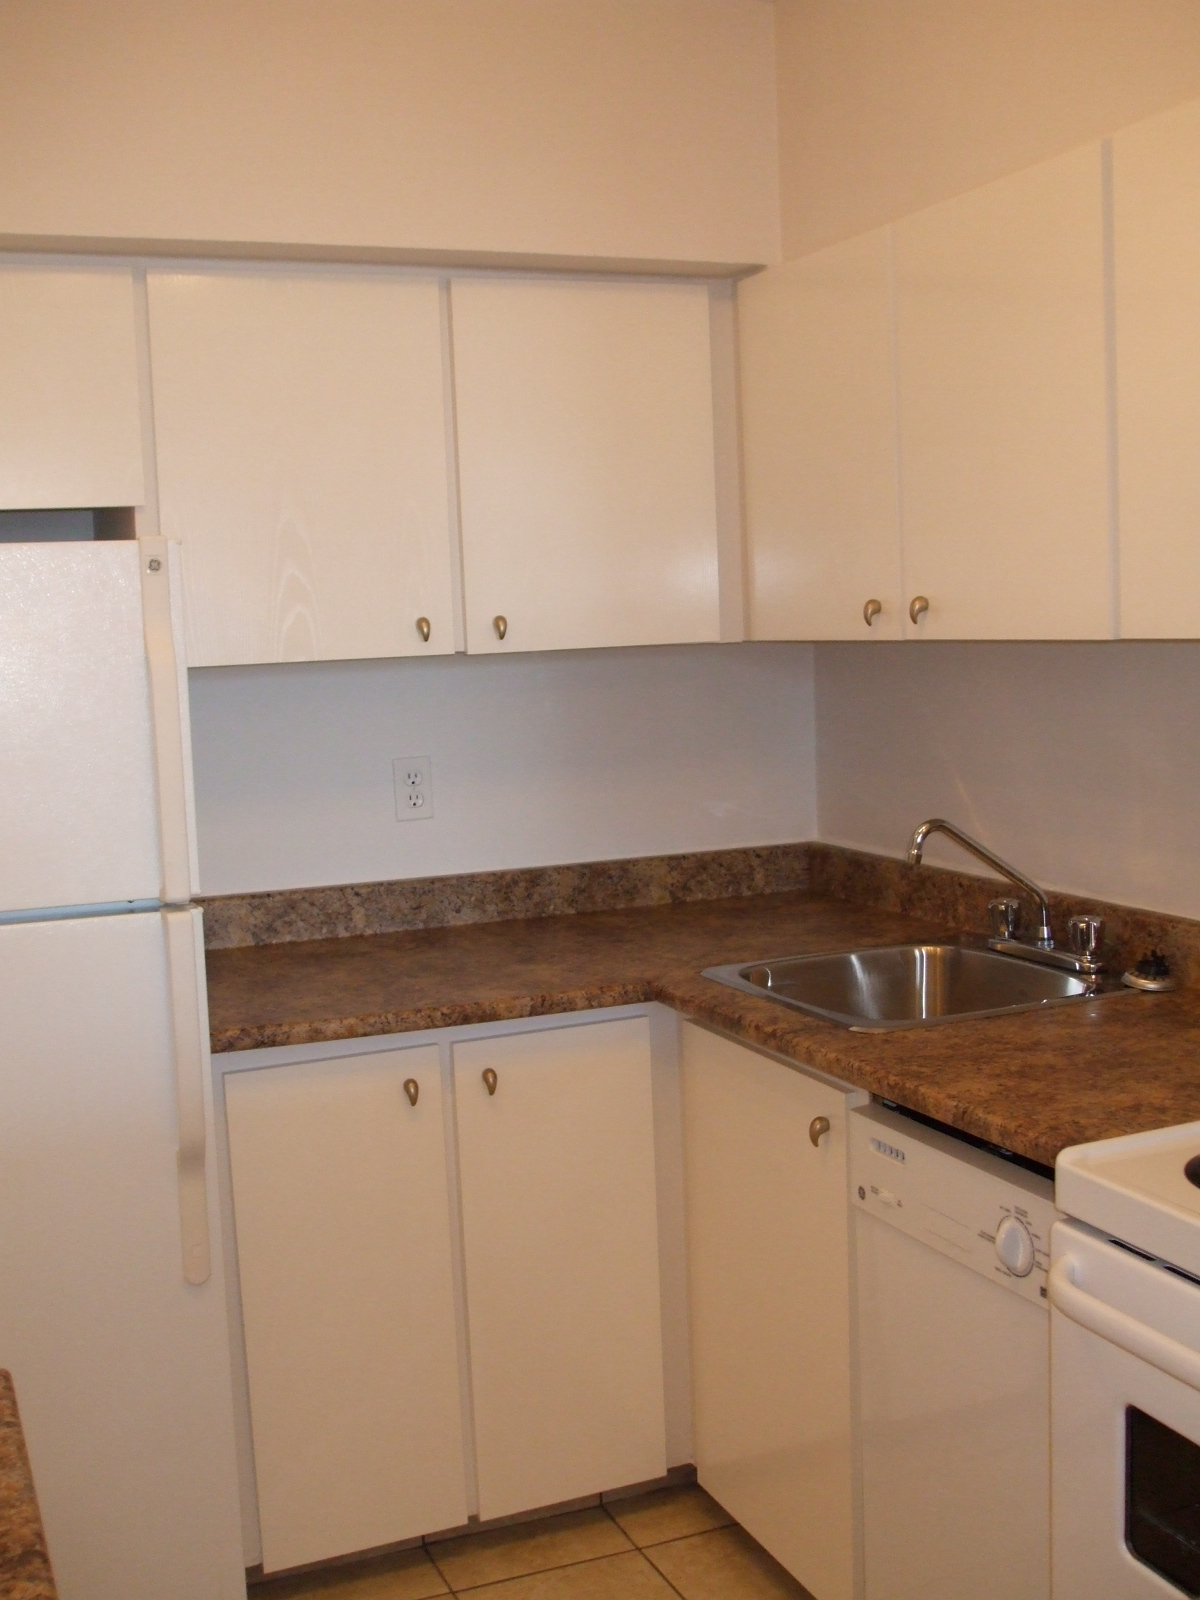 2 bedroom Apartments for rent in Plateau Mont-Royal at Tour Lafontaine - Photo 03 - RentQuebecApartments – L23211